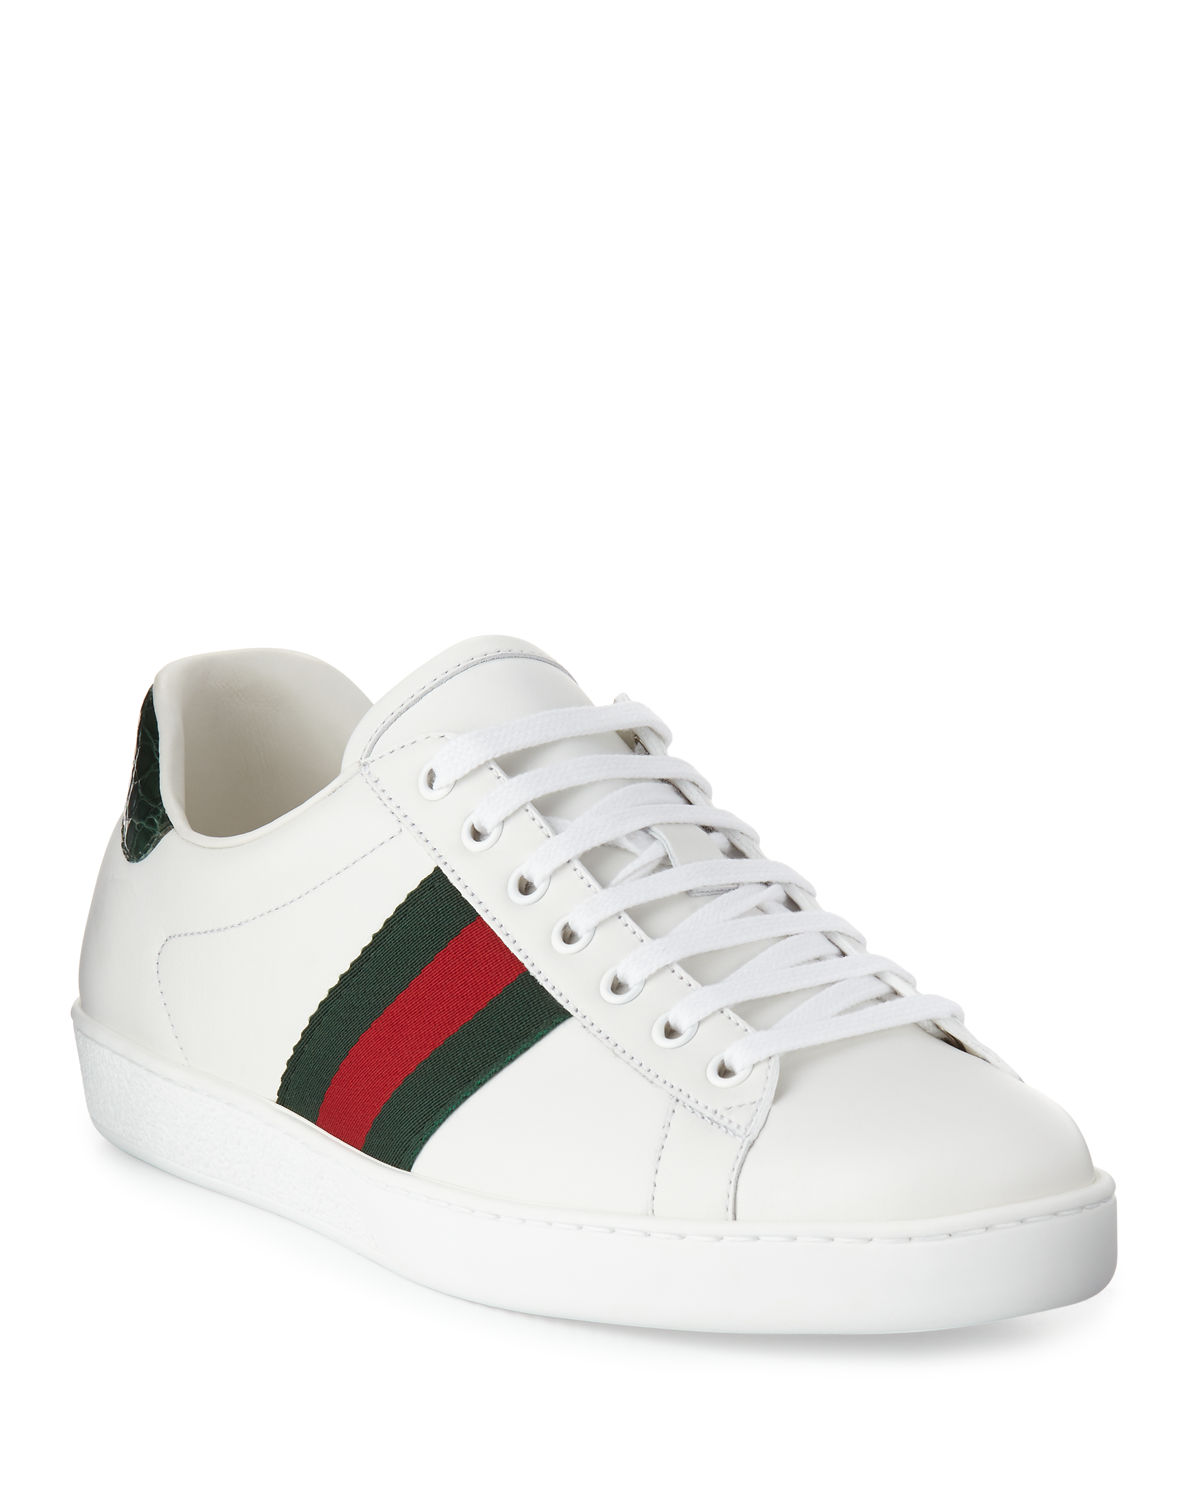 6a187c7d59c Gucci Men s New Ace Leather Low-Top Sneakers